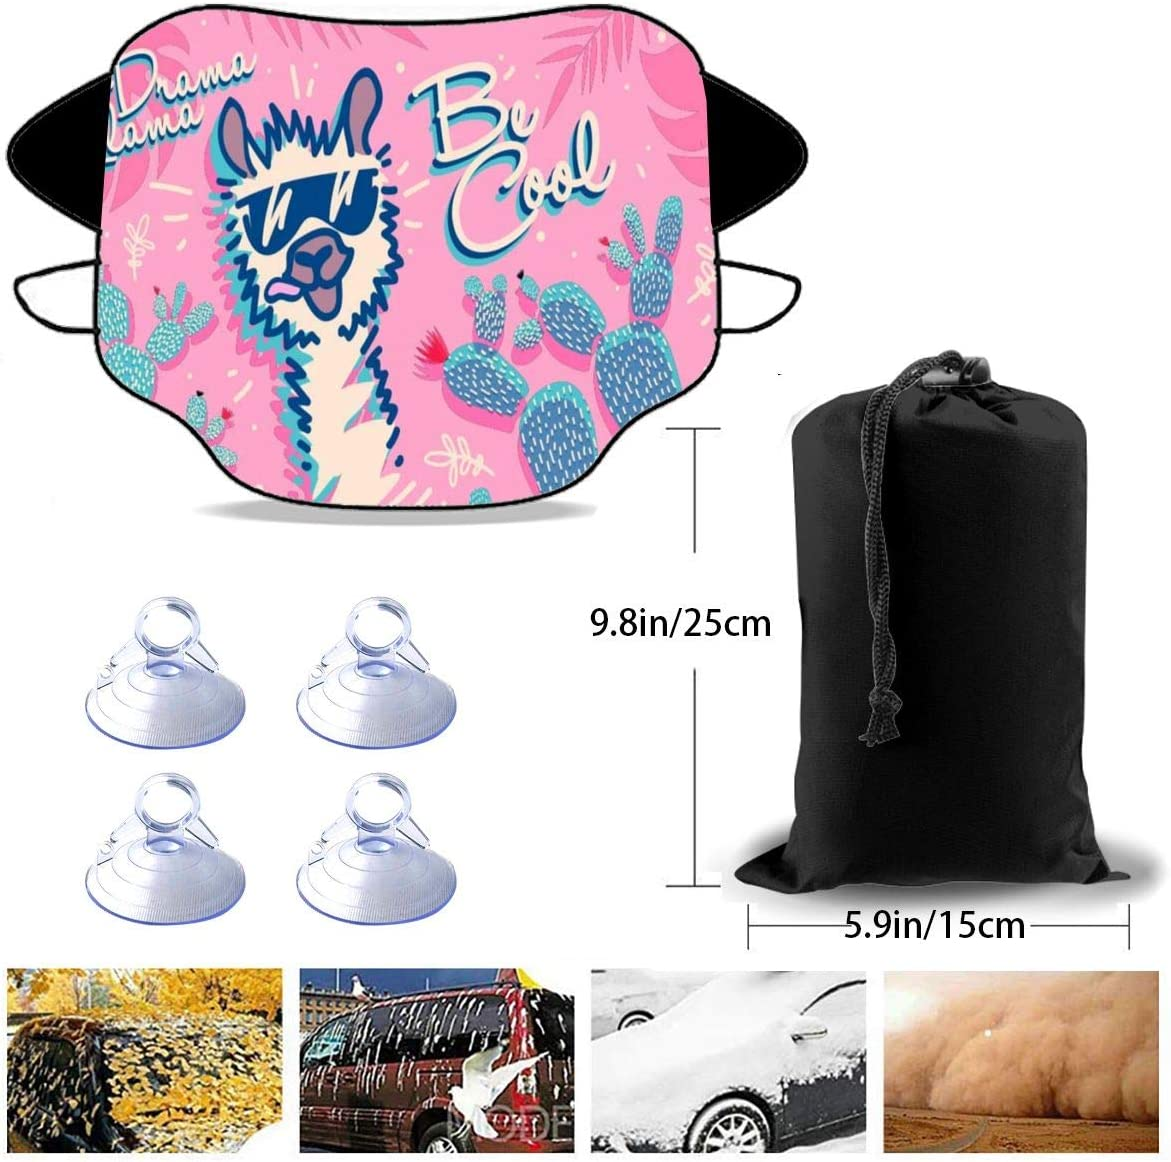 Mattrey No Drama Llama Be Cool Car Windshield Sun Shade Cover Front Water Sunlight Snow Cover